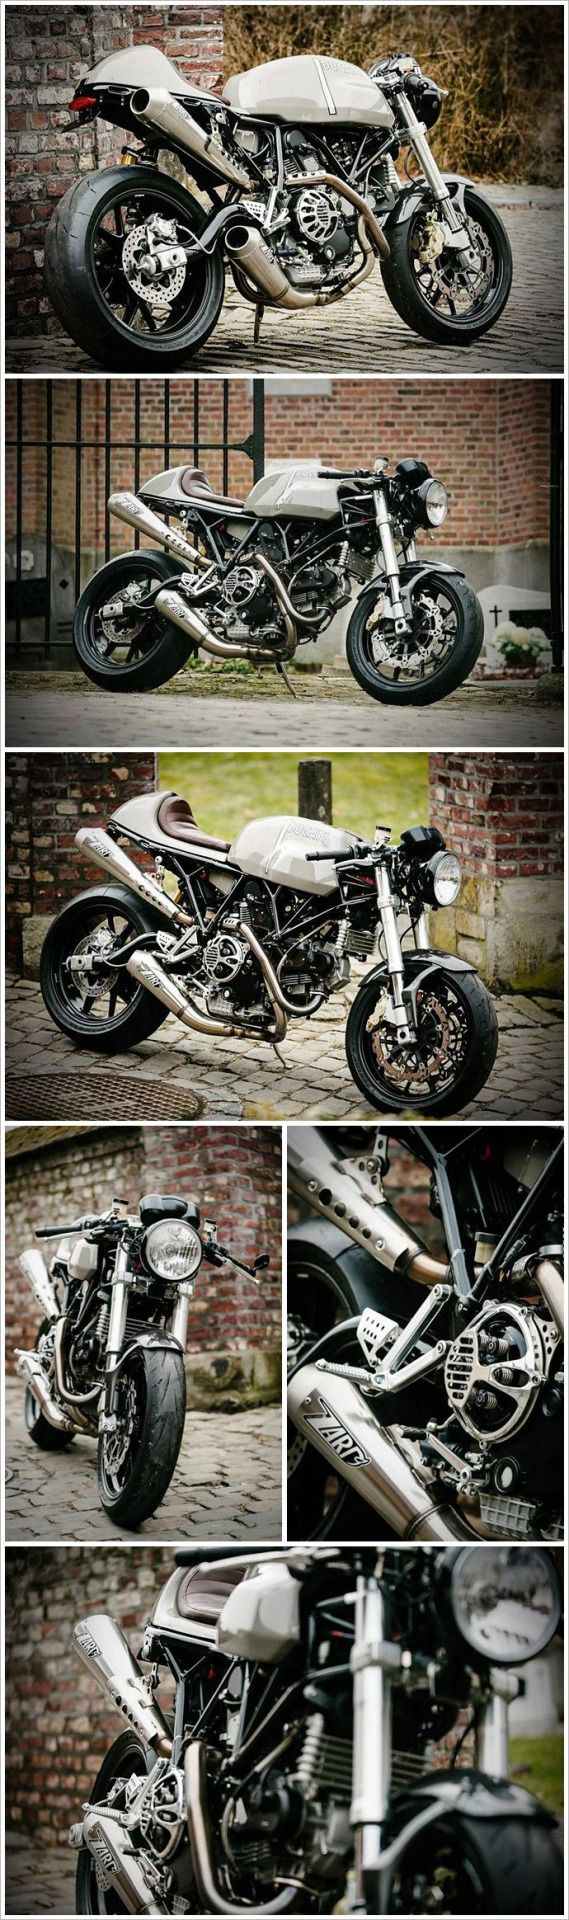 motorcycles-and-more:   Ducati Sport Classic 1000 / cafe racer